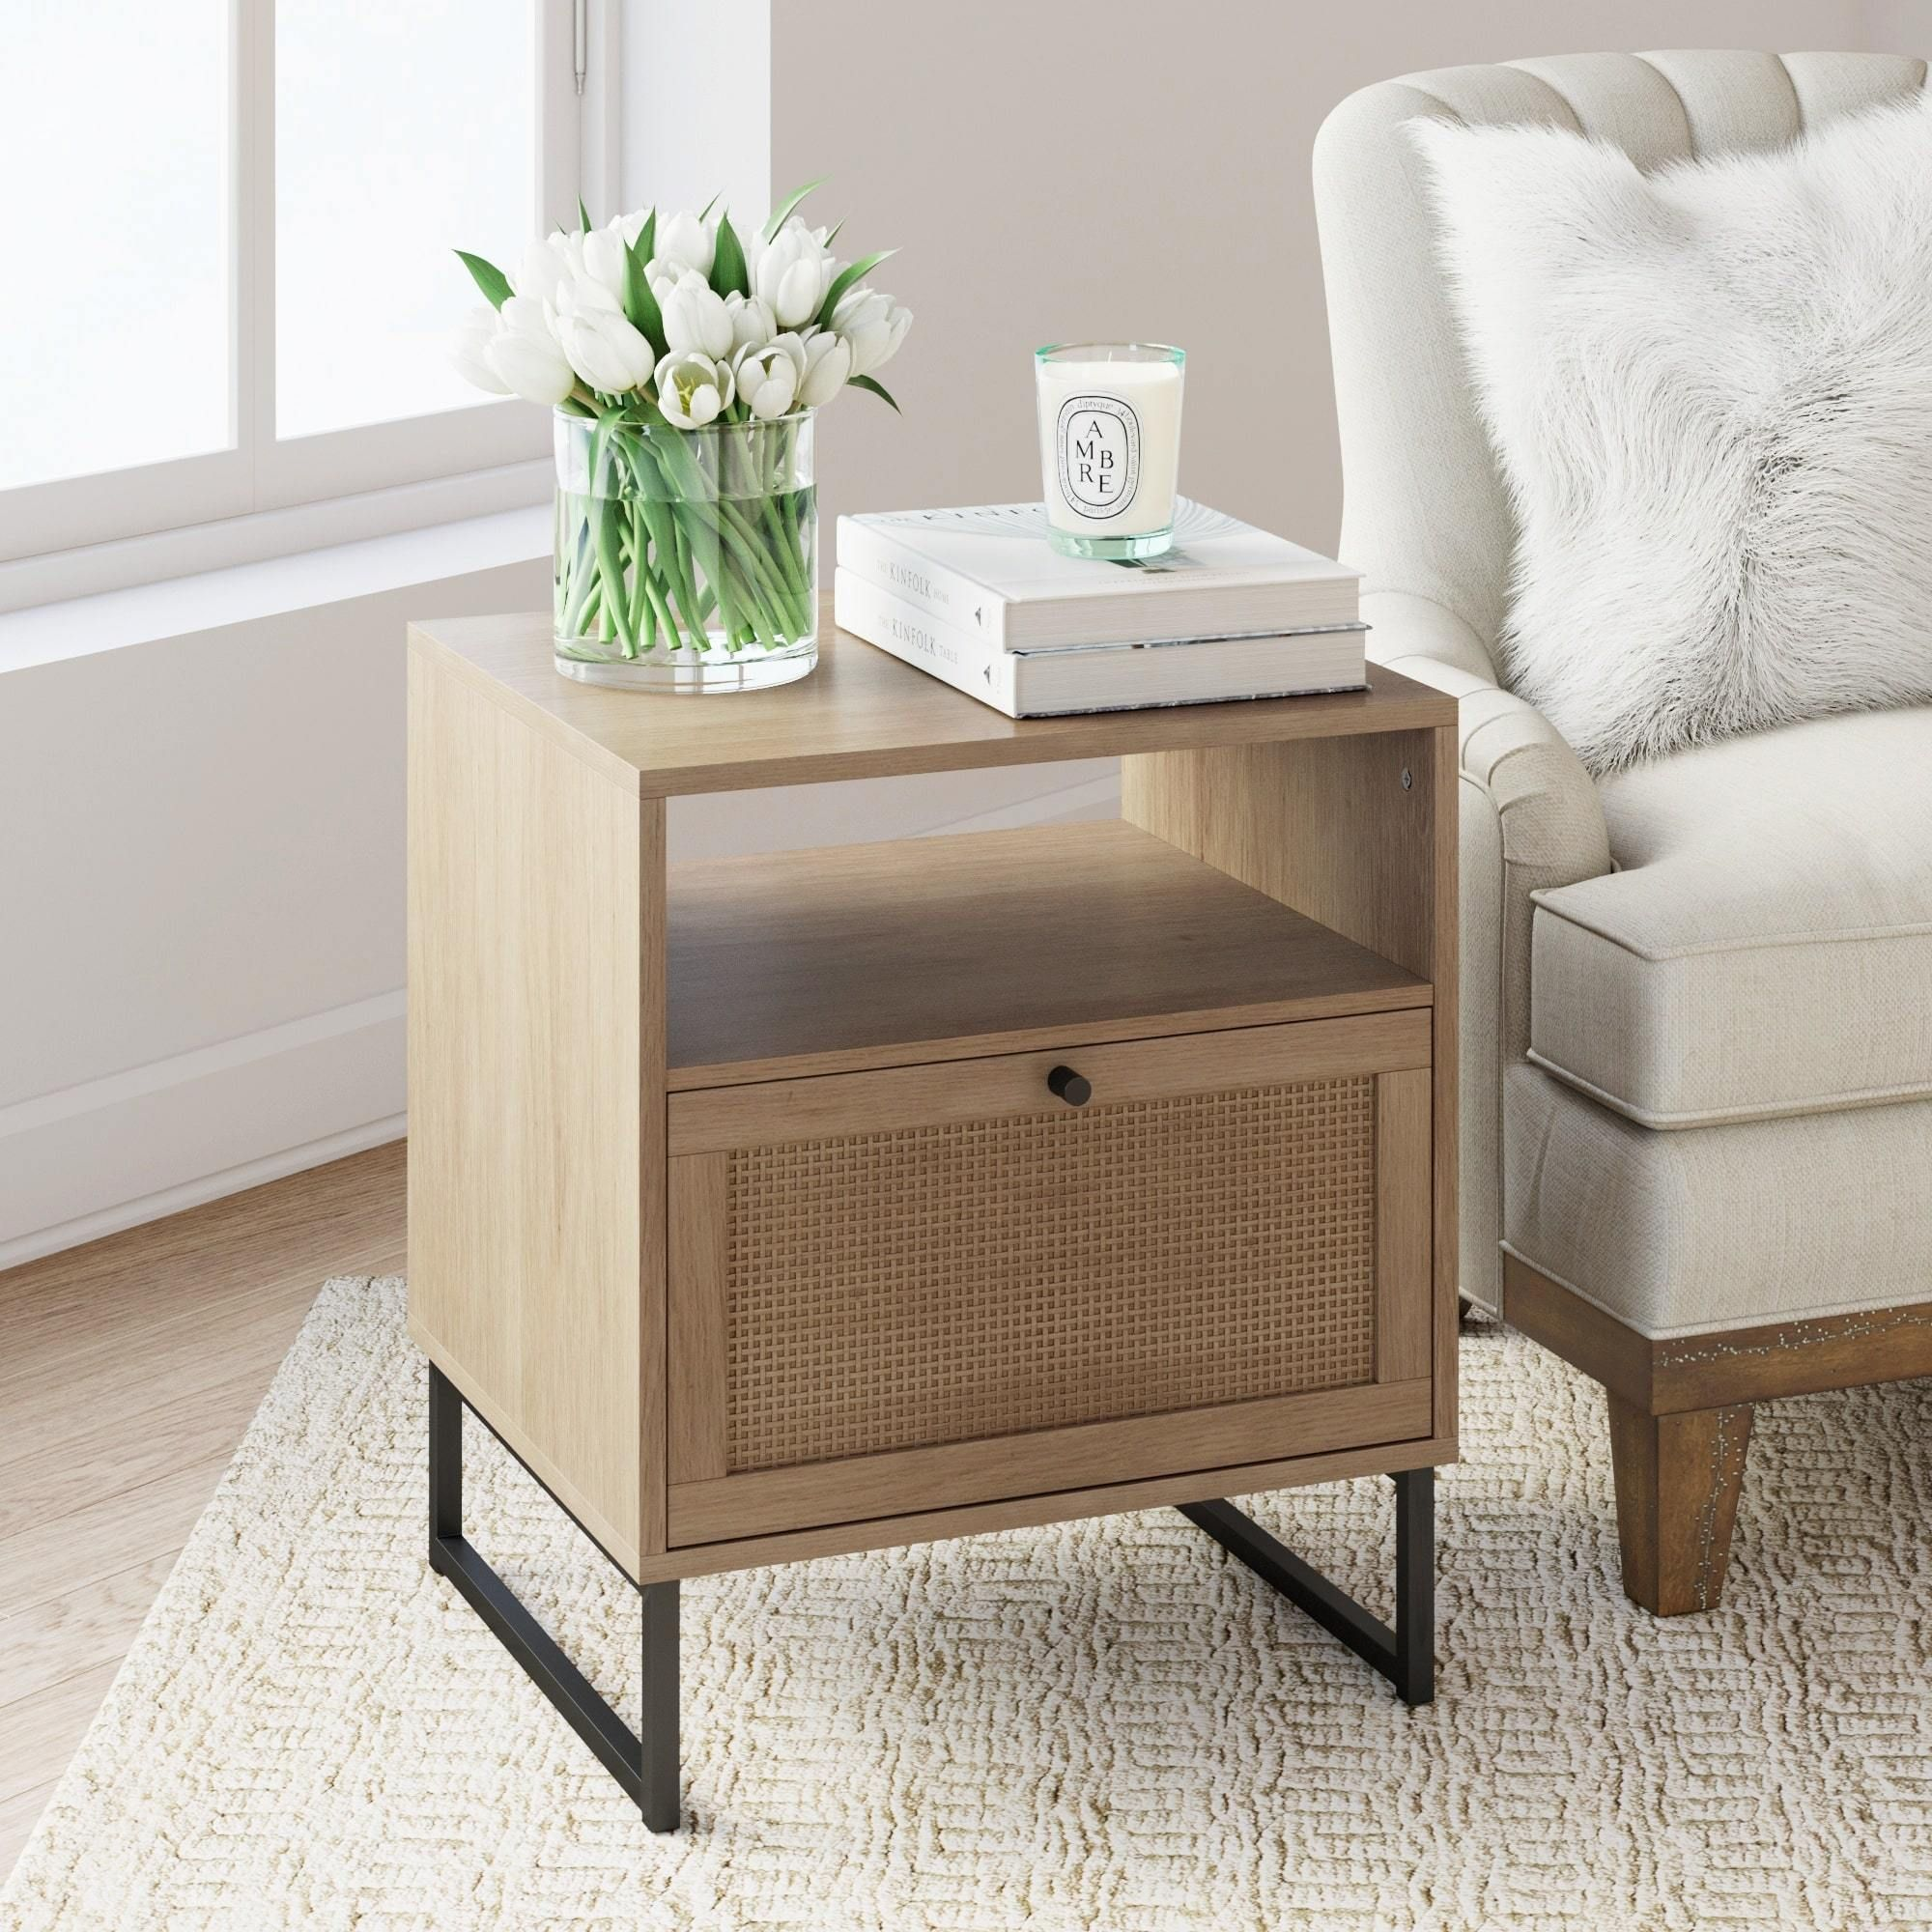 Nathan James Mina Natural Oak Wood Black Accent With Storage Living Room End Table Or Bedroom Nightstand Walmart Com Bedroom Night Stands Living Room End Tables Oak Furniture Living Room